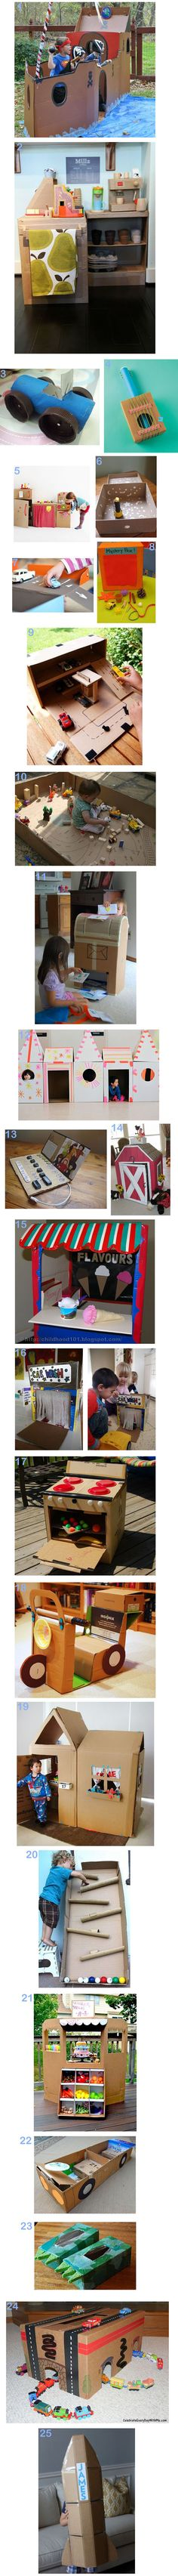 25 Fun Ideas for a Cardboard Box